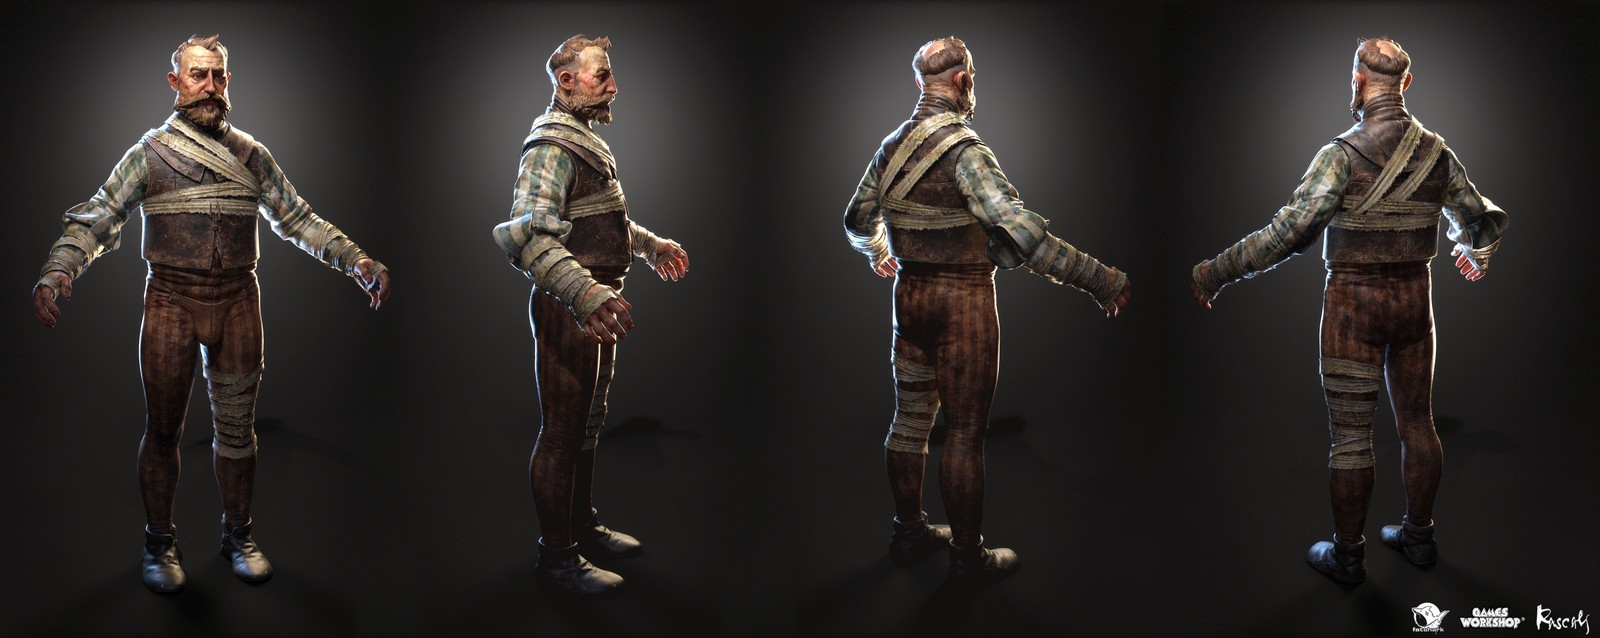 Chaos Prisoner is one of the NPCs of Fatshark's acclaimed co-op action.